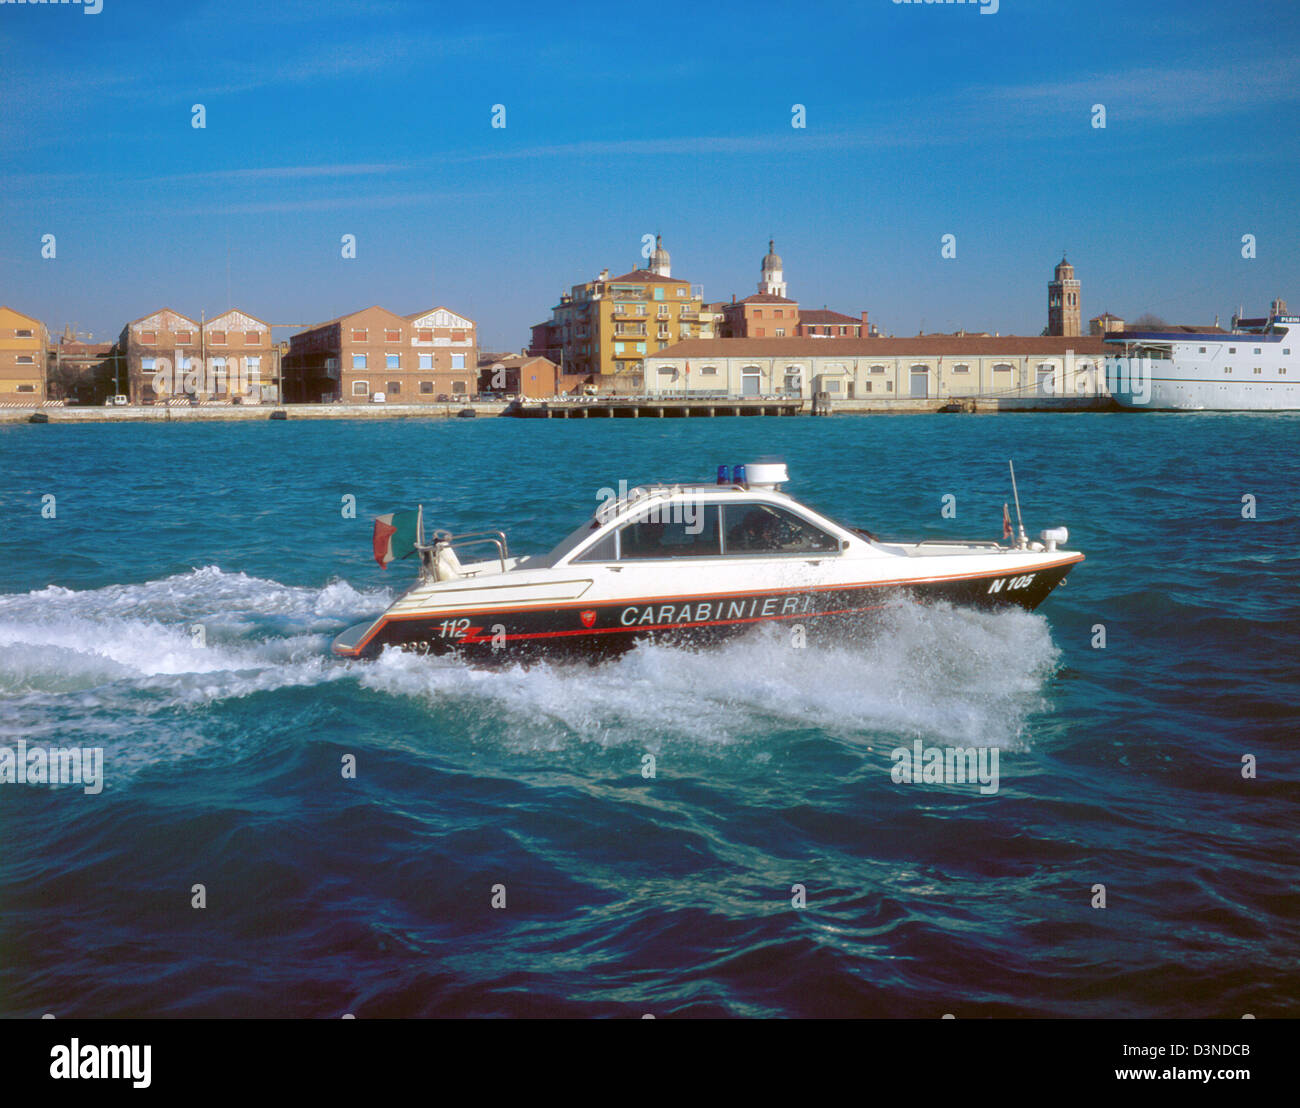 (FILE) - A motor boat of the Italian police (carabinieri) is pictured at a waterway in Venice, Italy, February 2005.Photo: - Stock Image